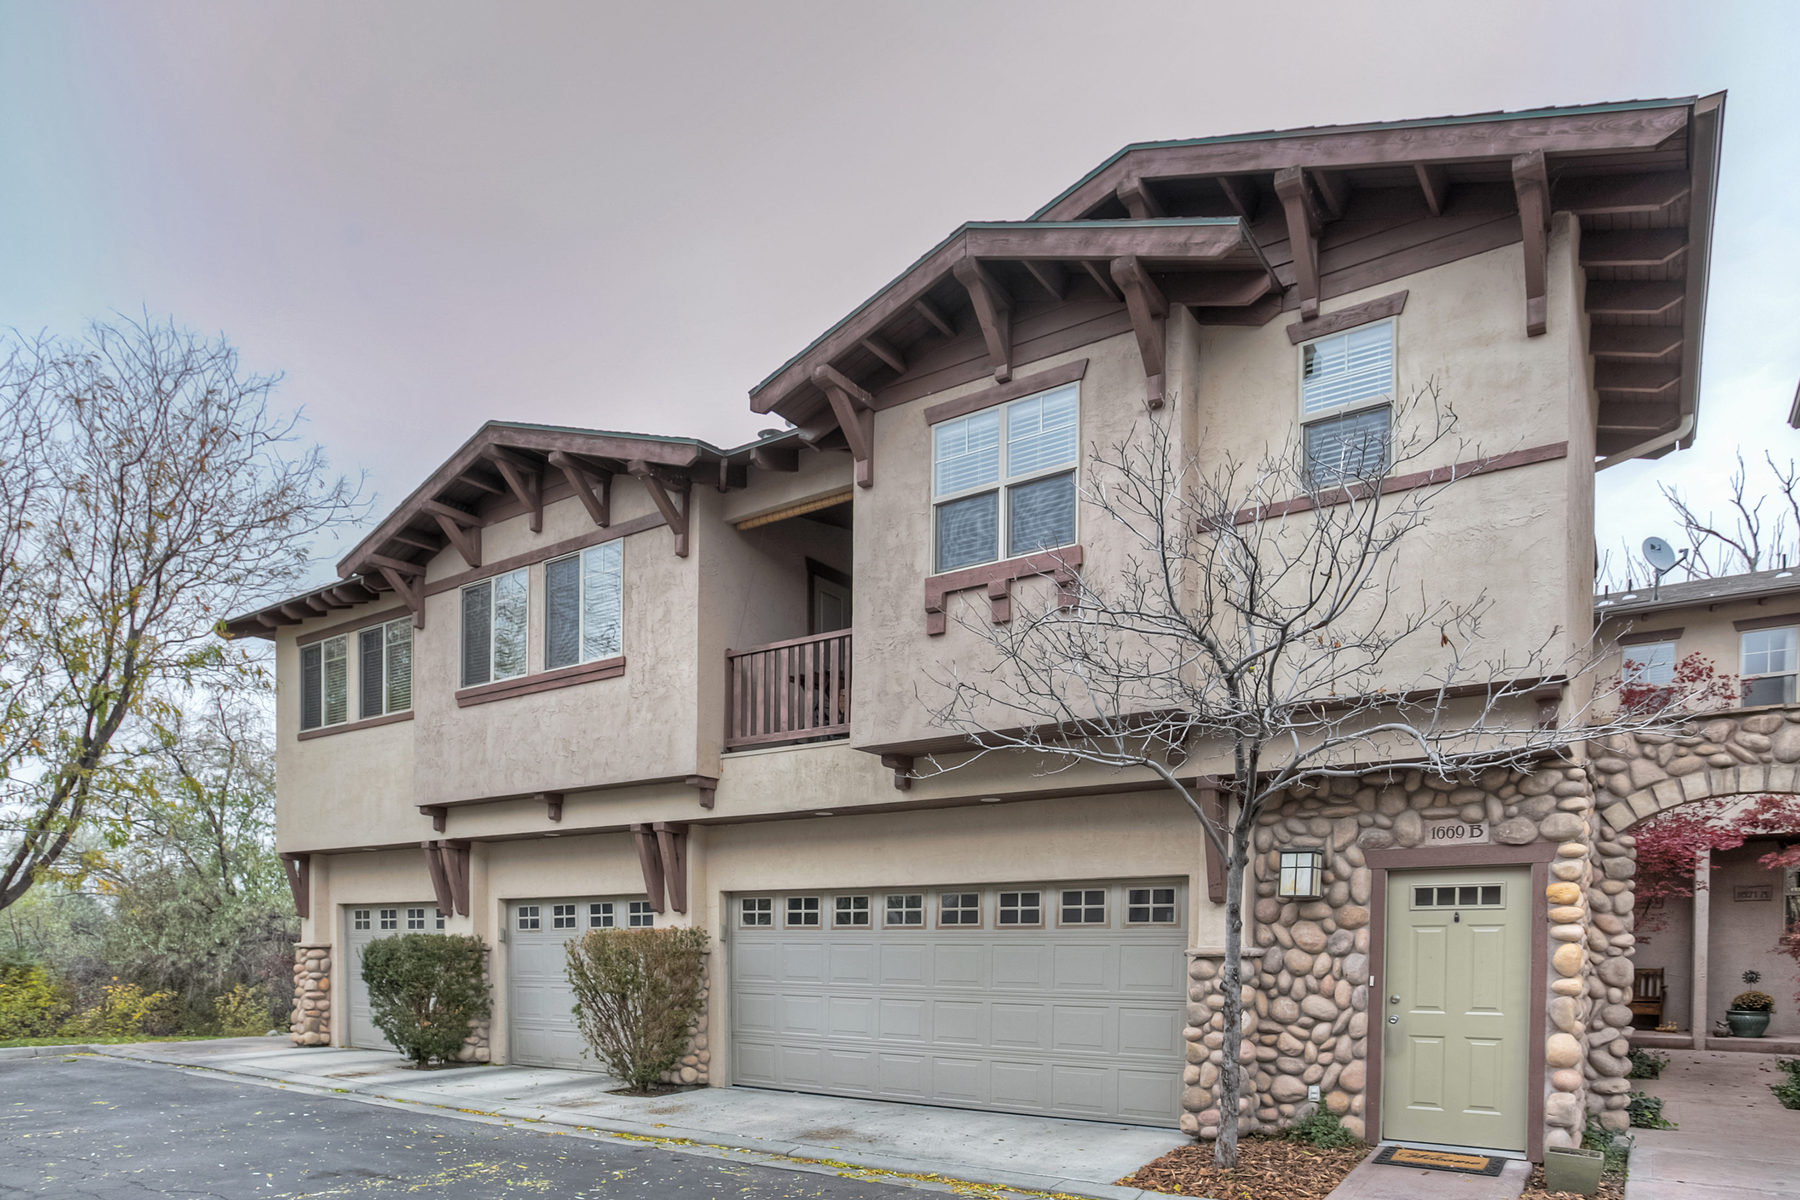 Single Family Home for Sale at Top Floor South Facing Townhome 1669 Roycroft Pl #B Salt Lake City, Utah 84124 United States